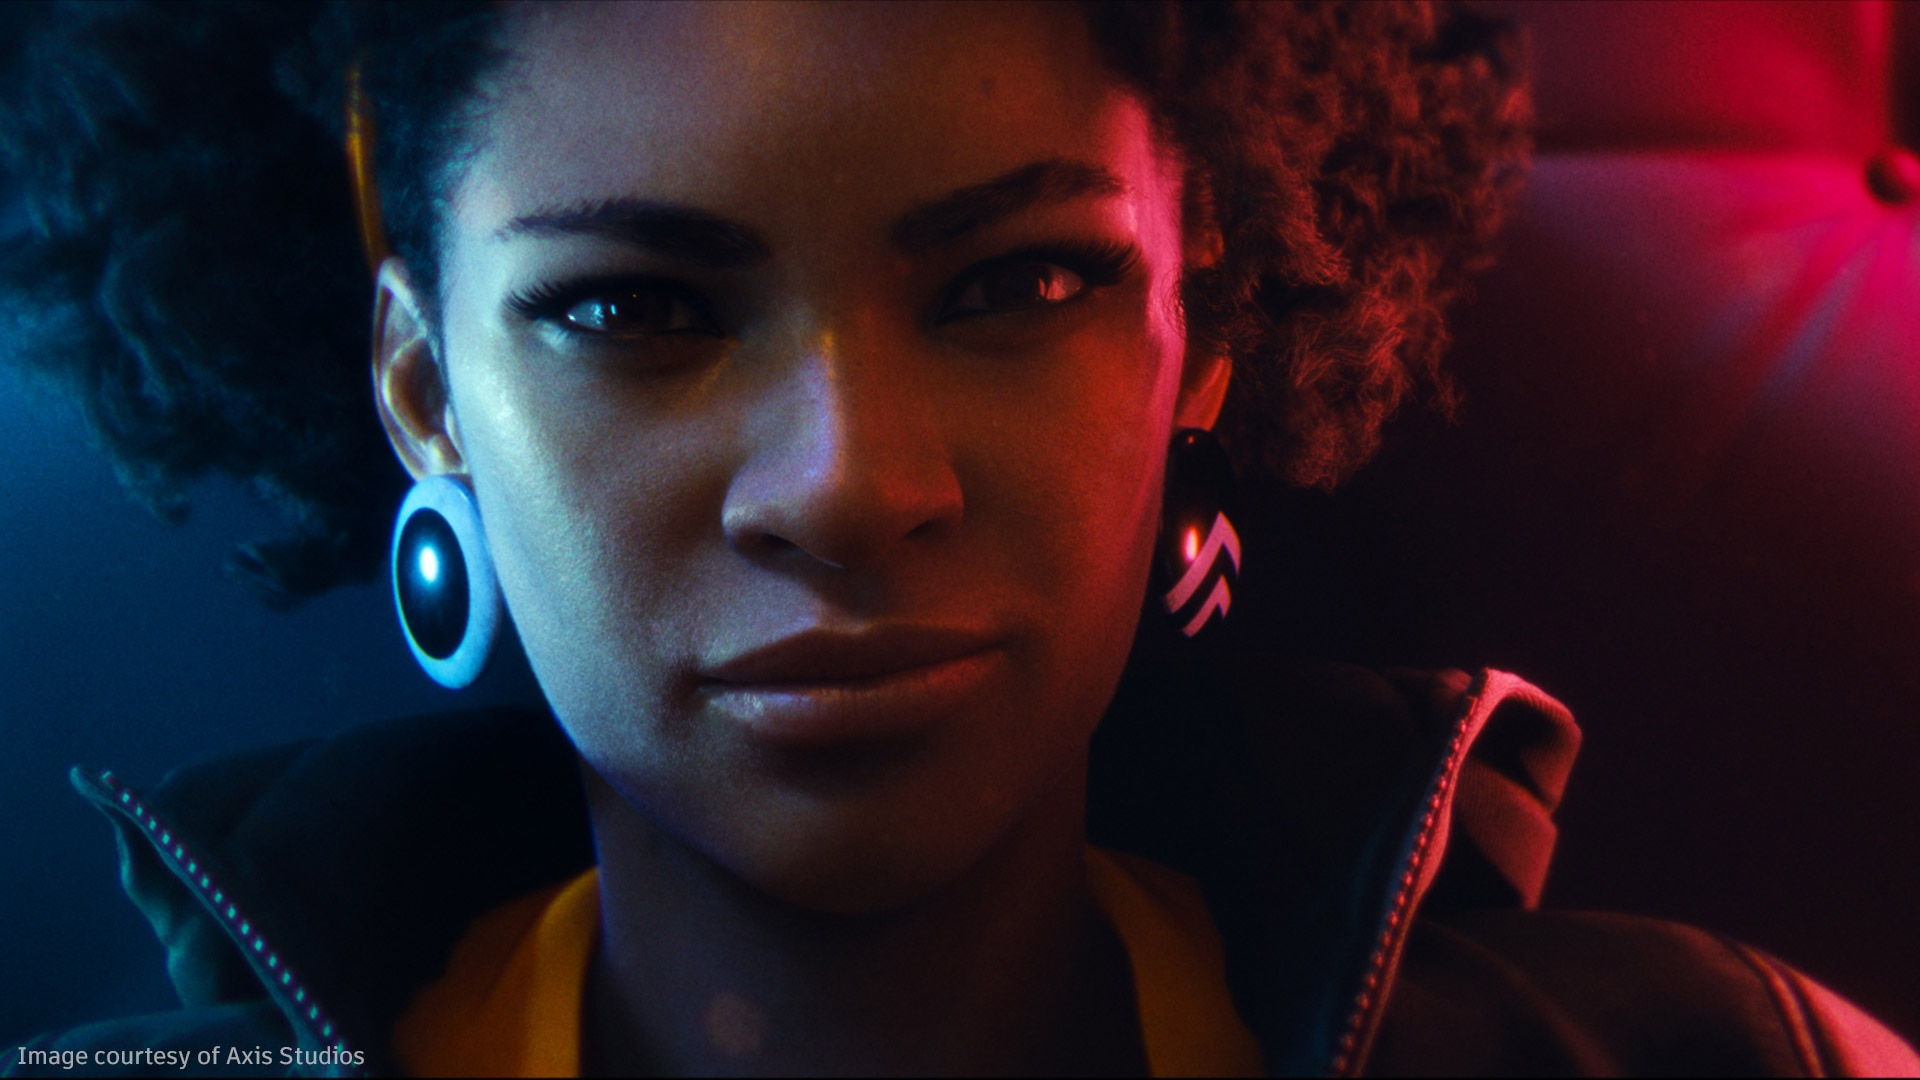 Portrait image of a young African American female character from DEATHLOOP game trailer